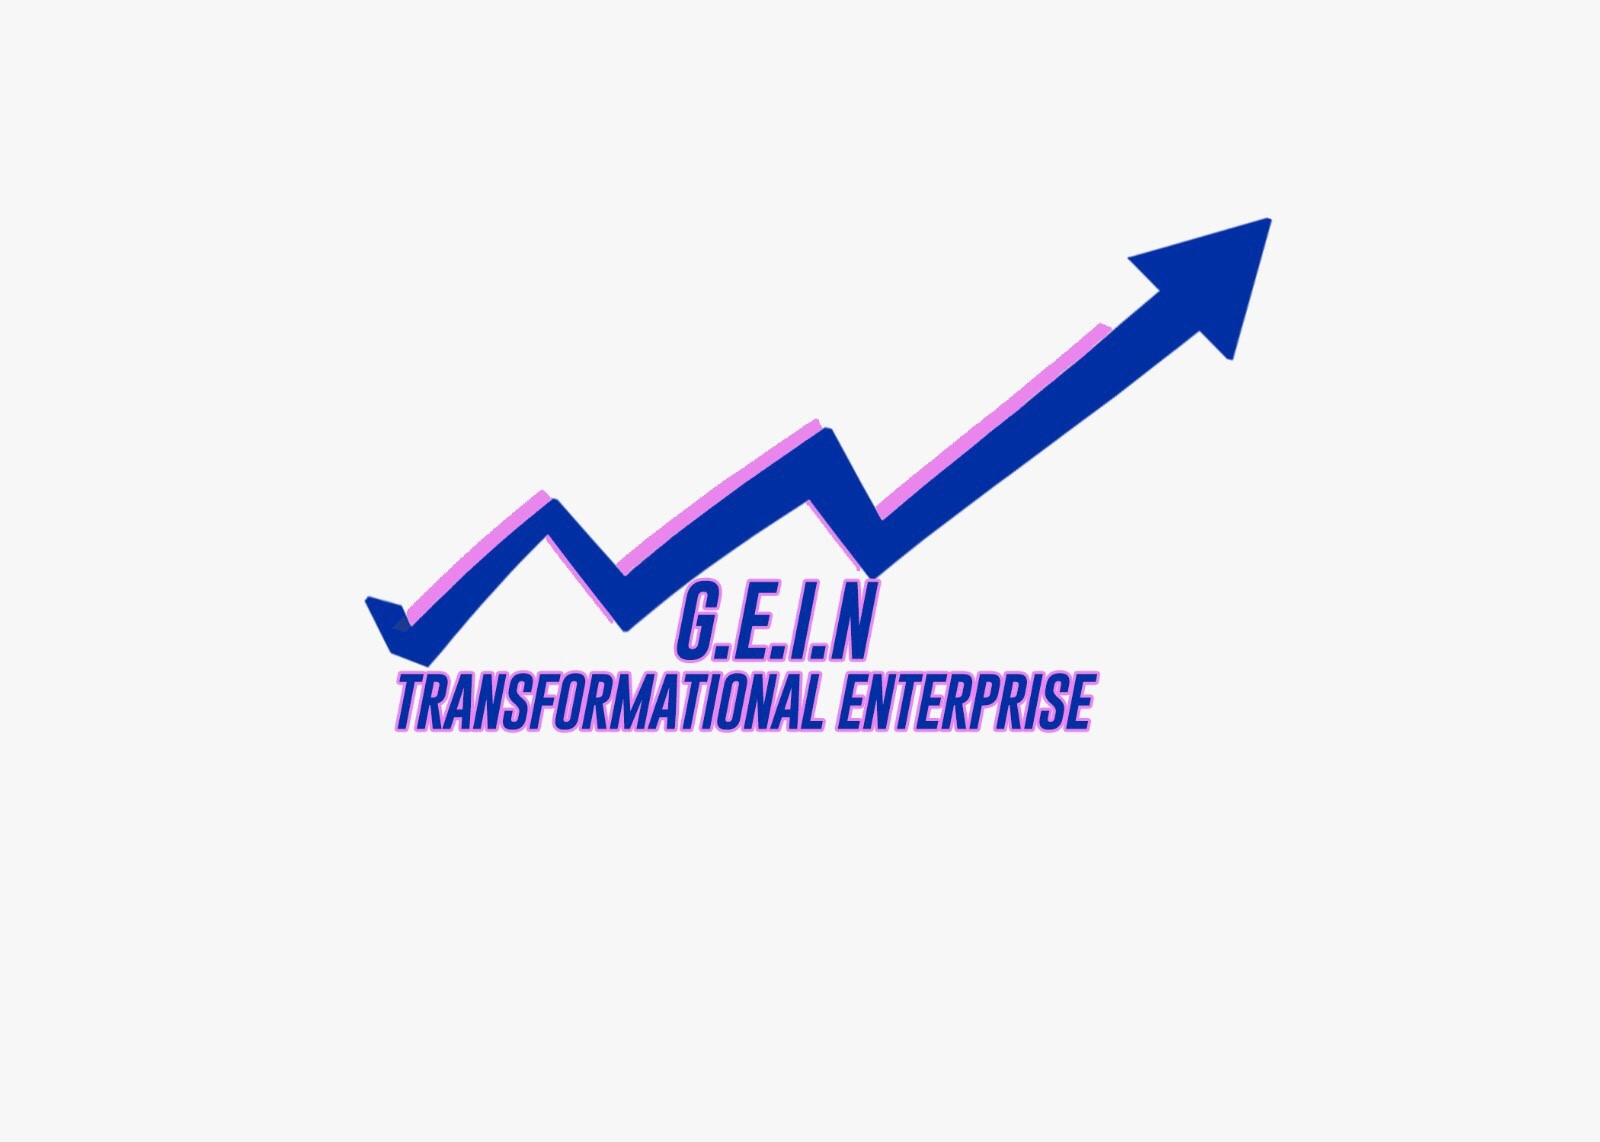 G.E.I.N Transformational Enterprise